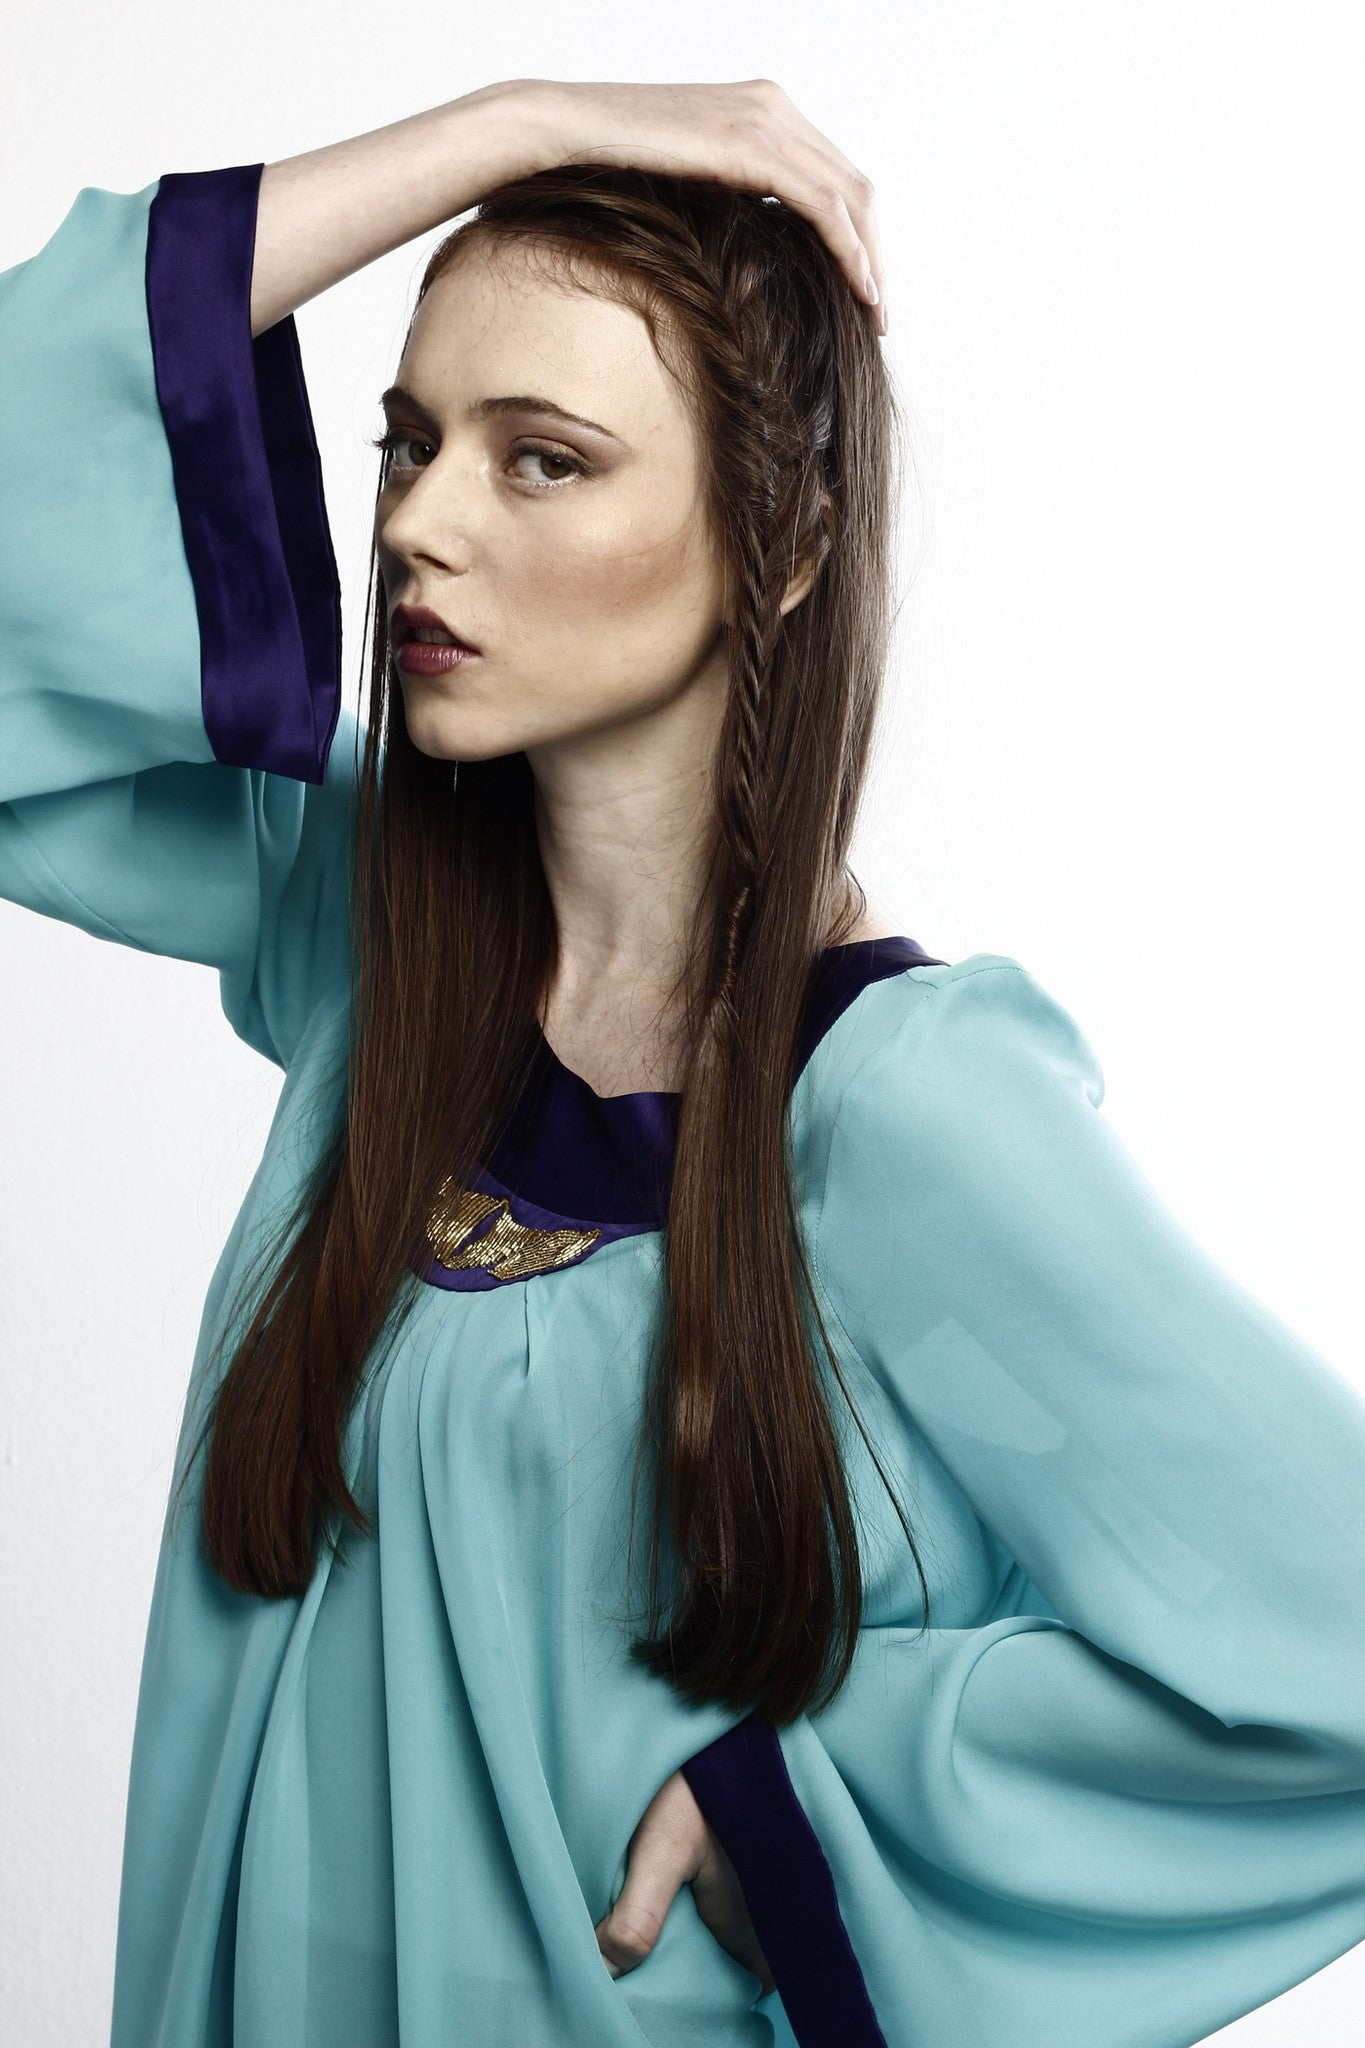 Silk blouse, color-blocked, long, blue, pleated, modest and elegant